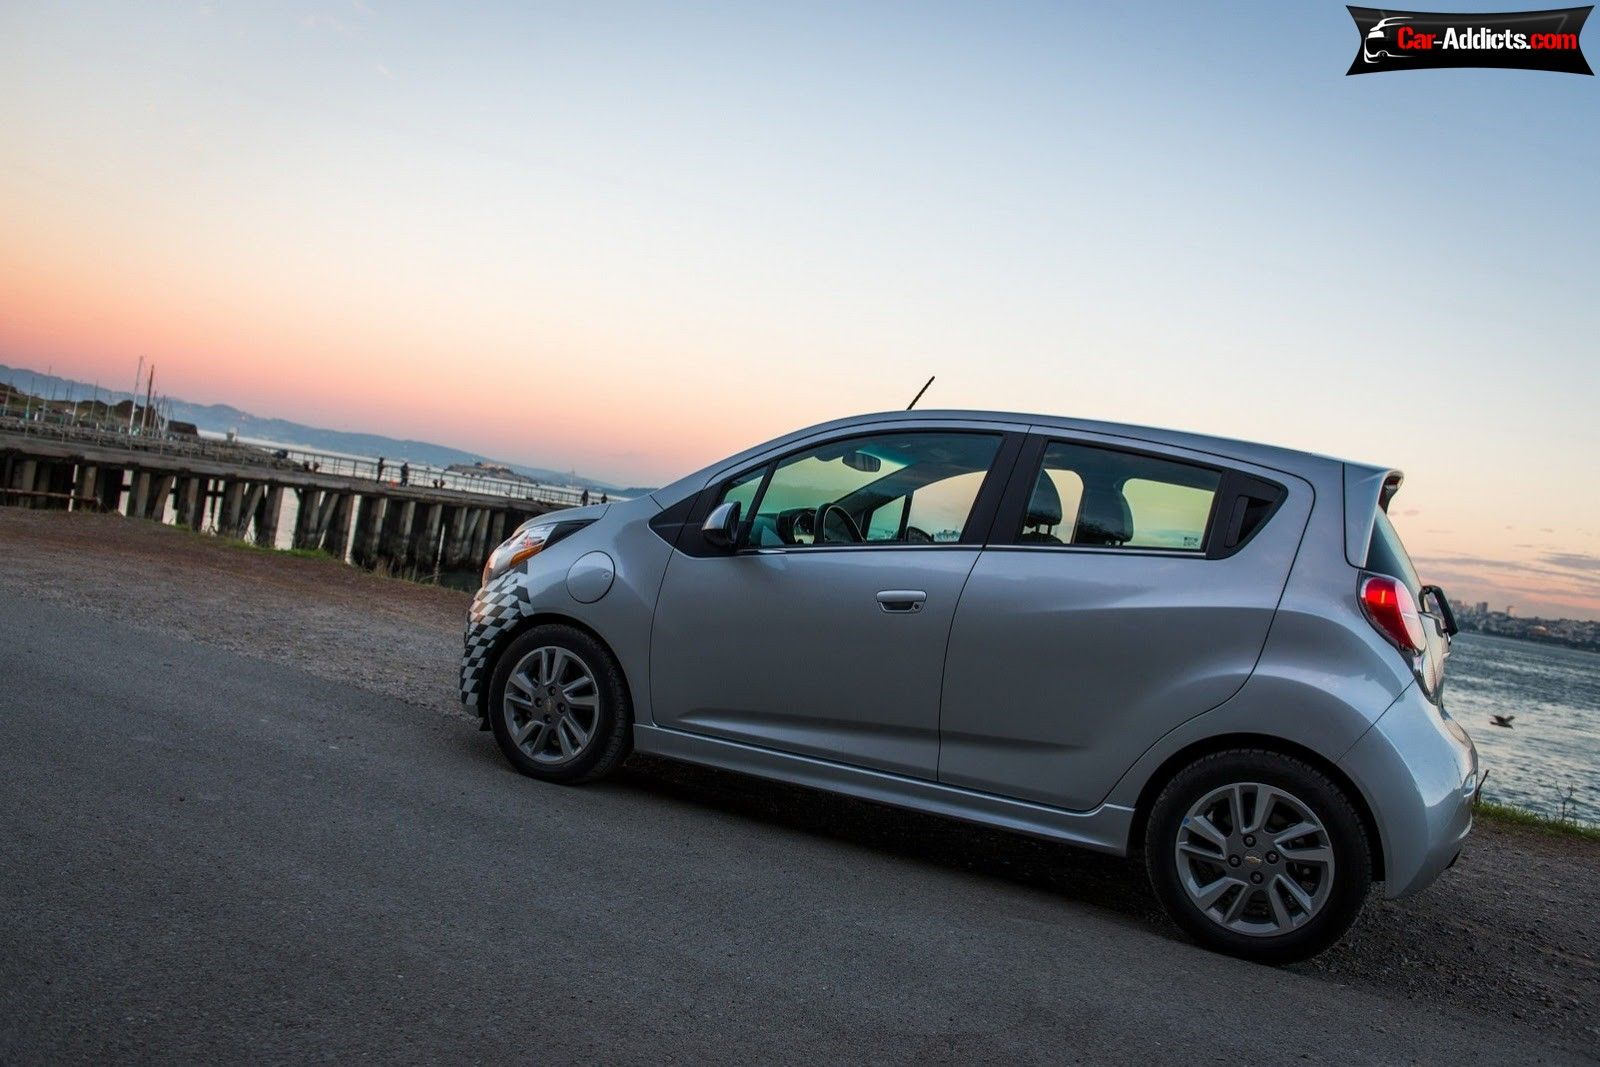 2013 Chevrolet Spark Ev Information And Official Photos